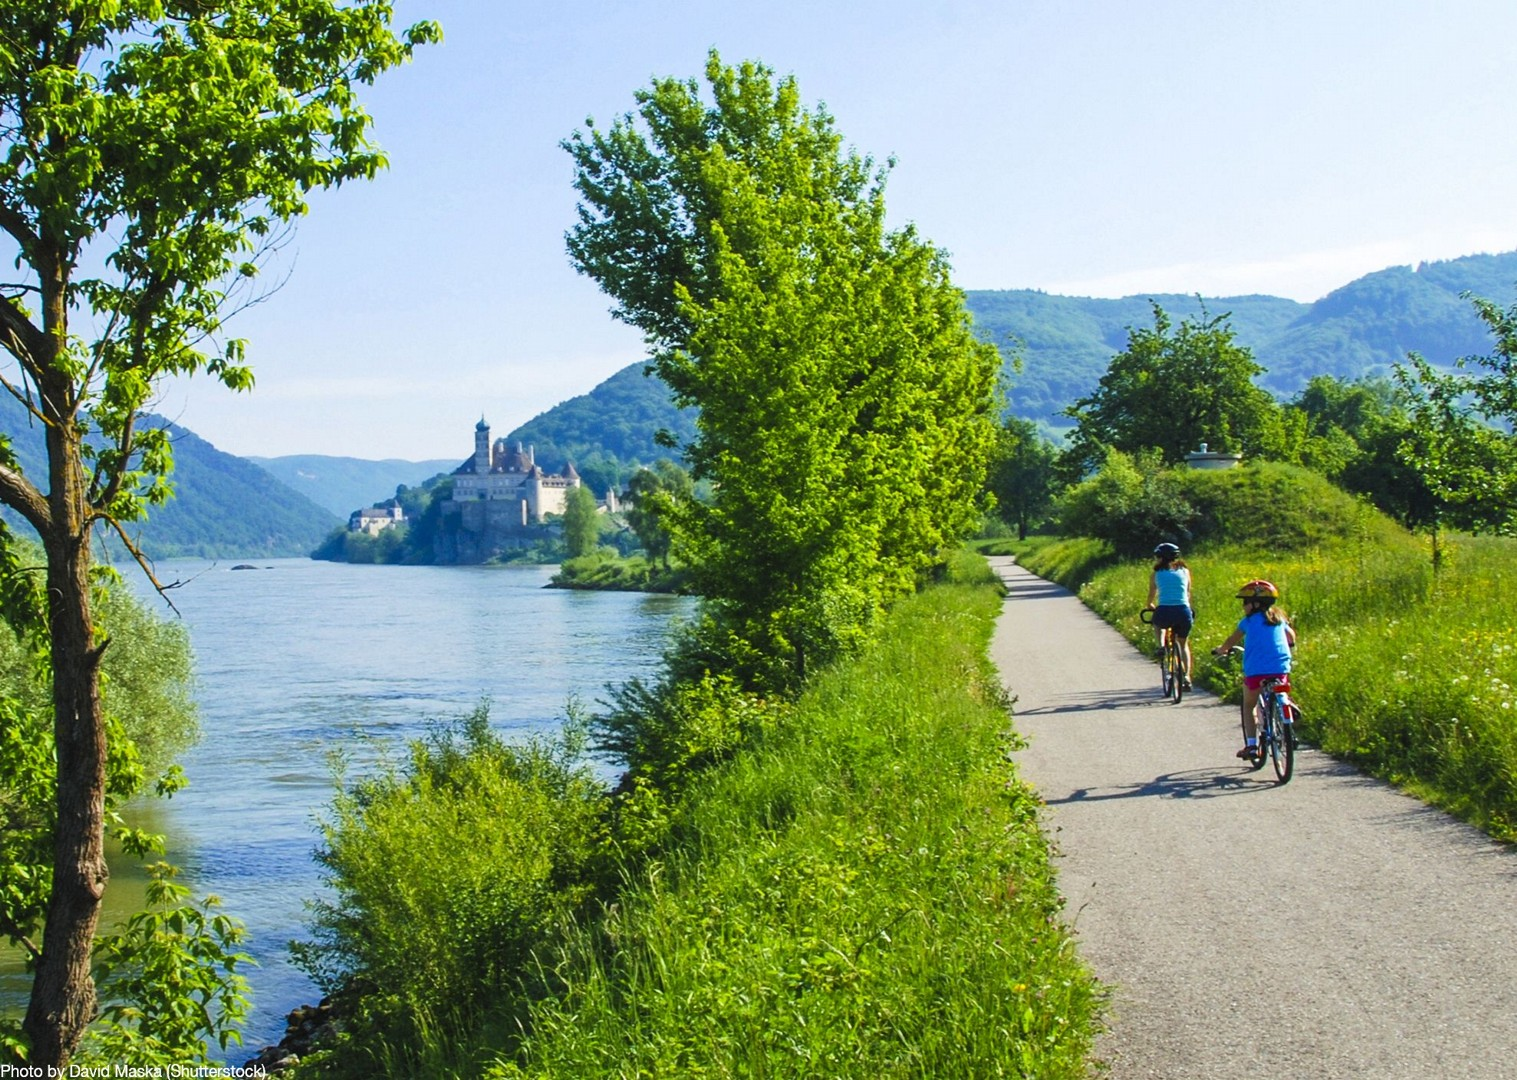 danube-cycle-path-8-days-germany-austria-self-guided-holiday-biking.jpg - Germany and Austria - The Danube Cyclepath (8 Days) - Self-Guided Leisure Cycling Holiday - Leisure Cycling